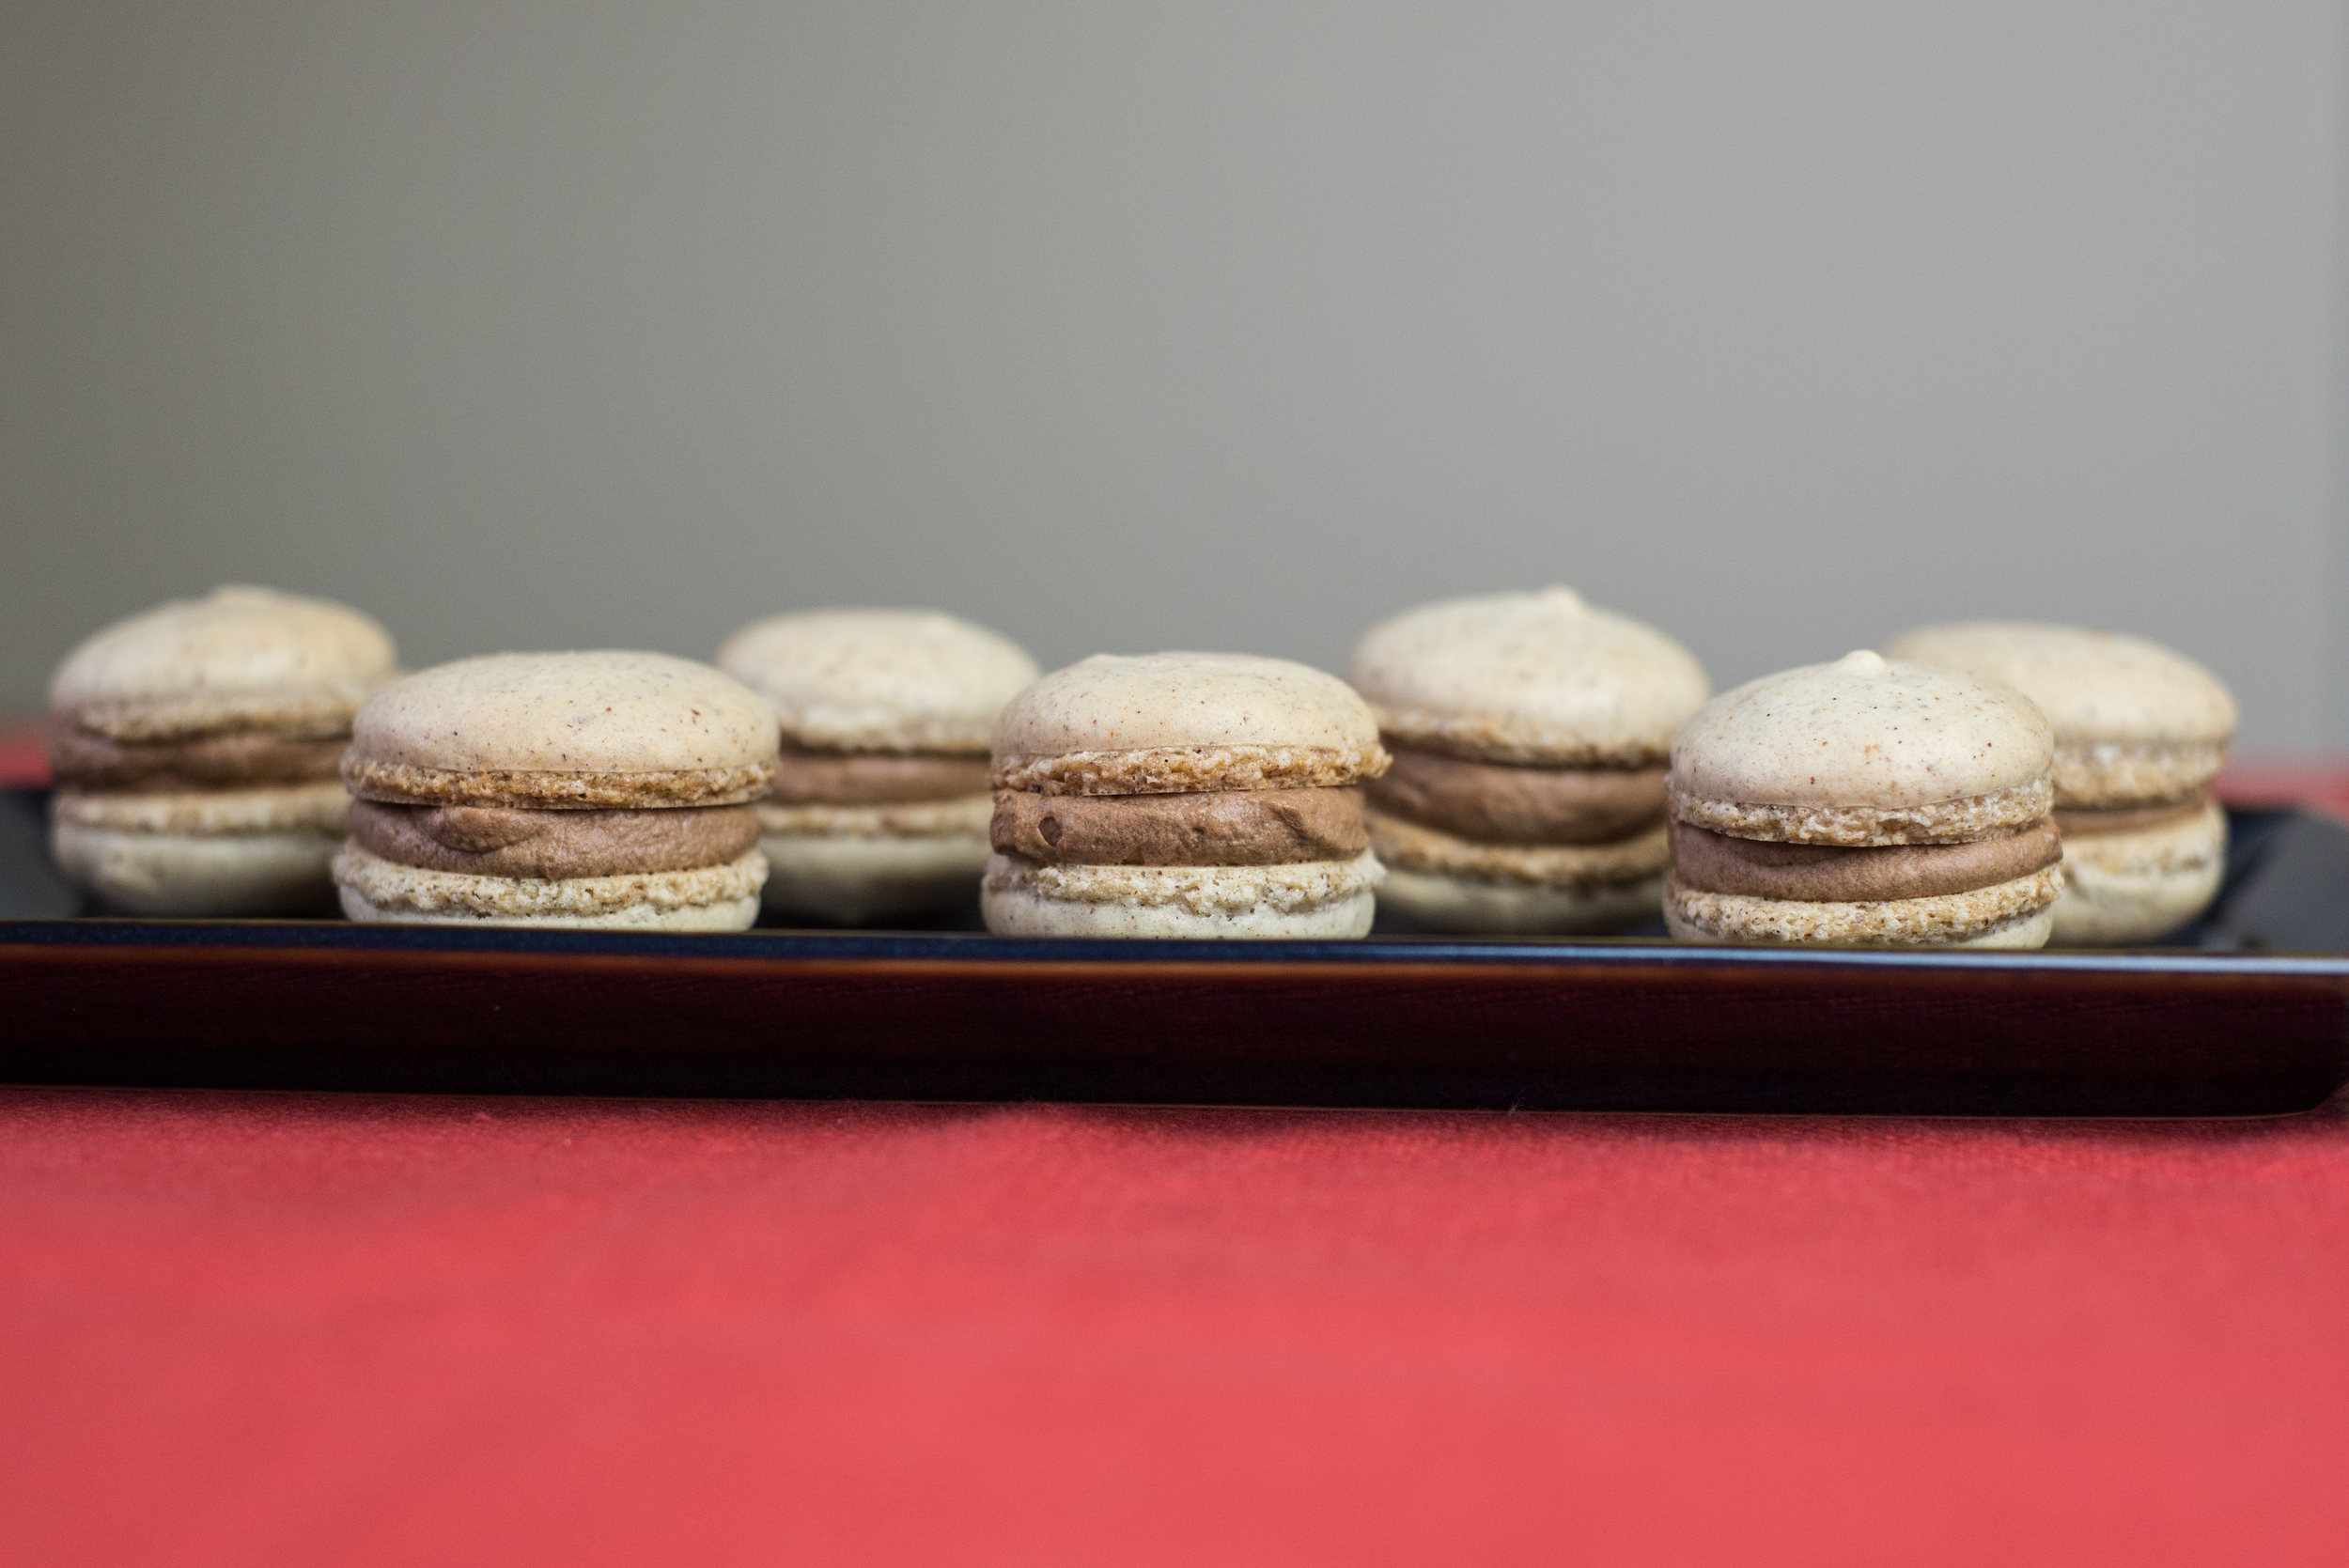 macaron, chocolate hazelnut, french, classic, dessert, recipe